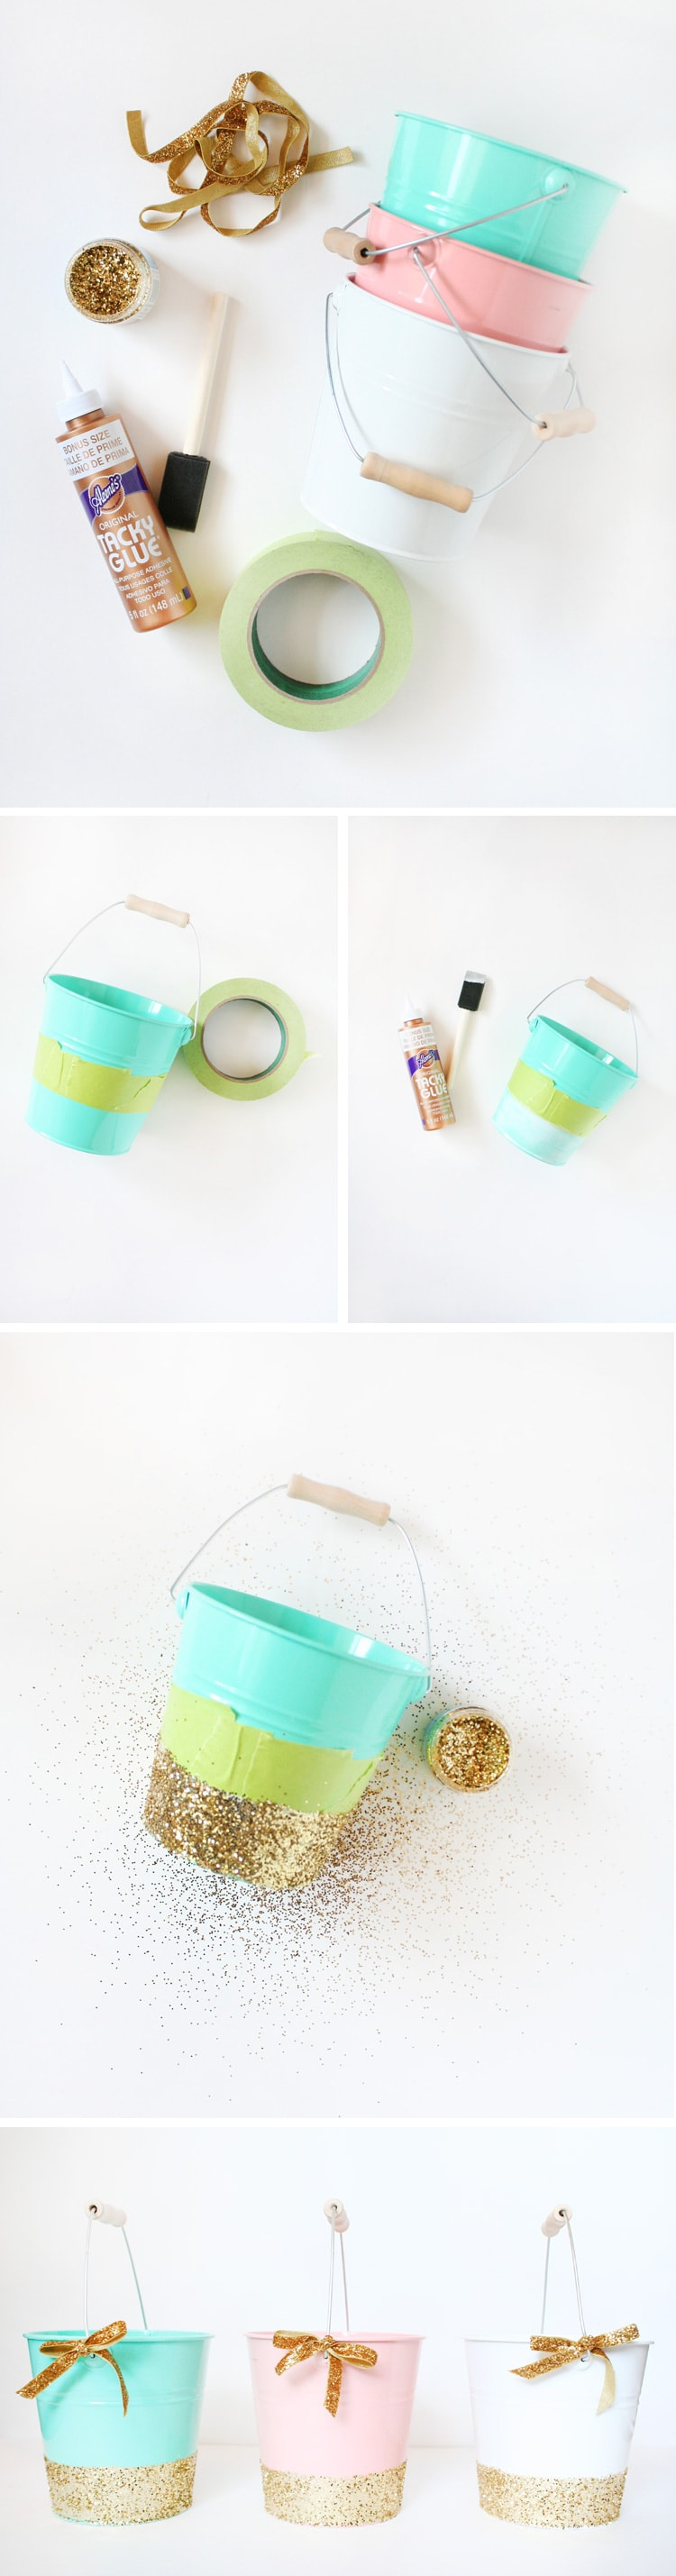 DIY Glittered Easter Pails